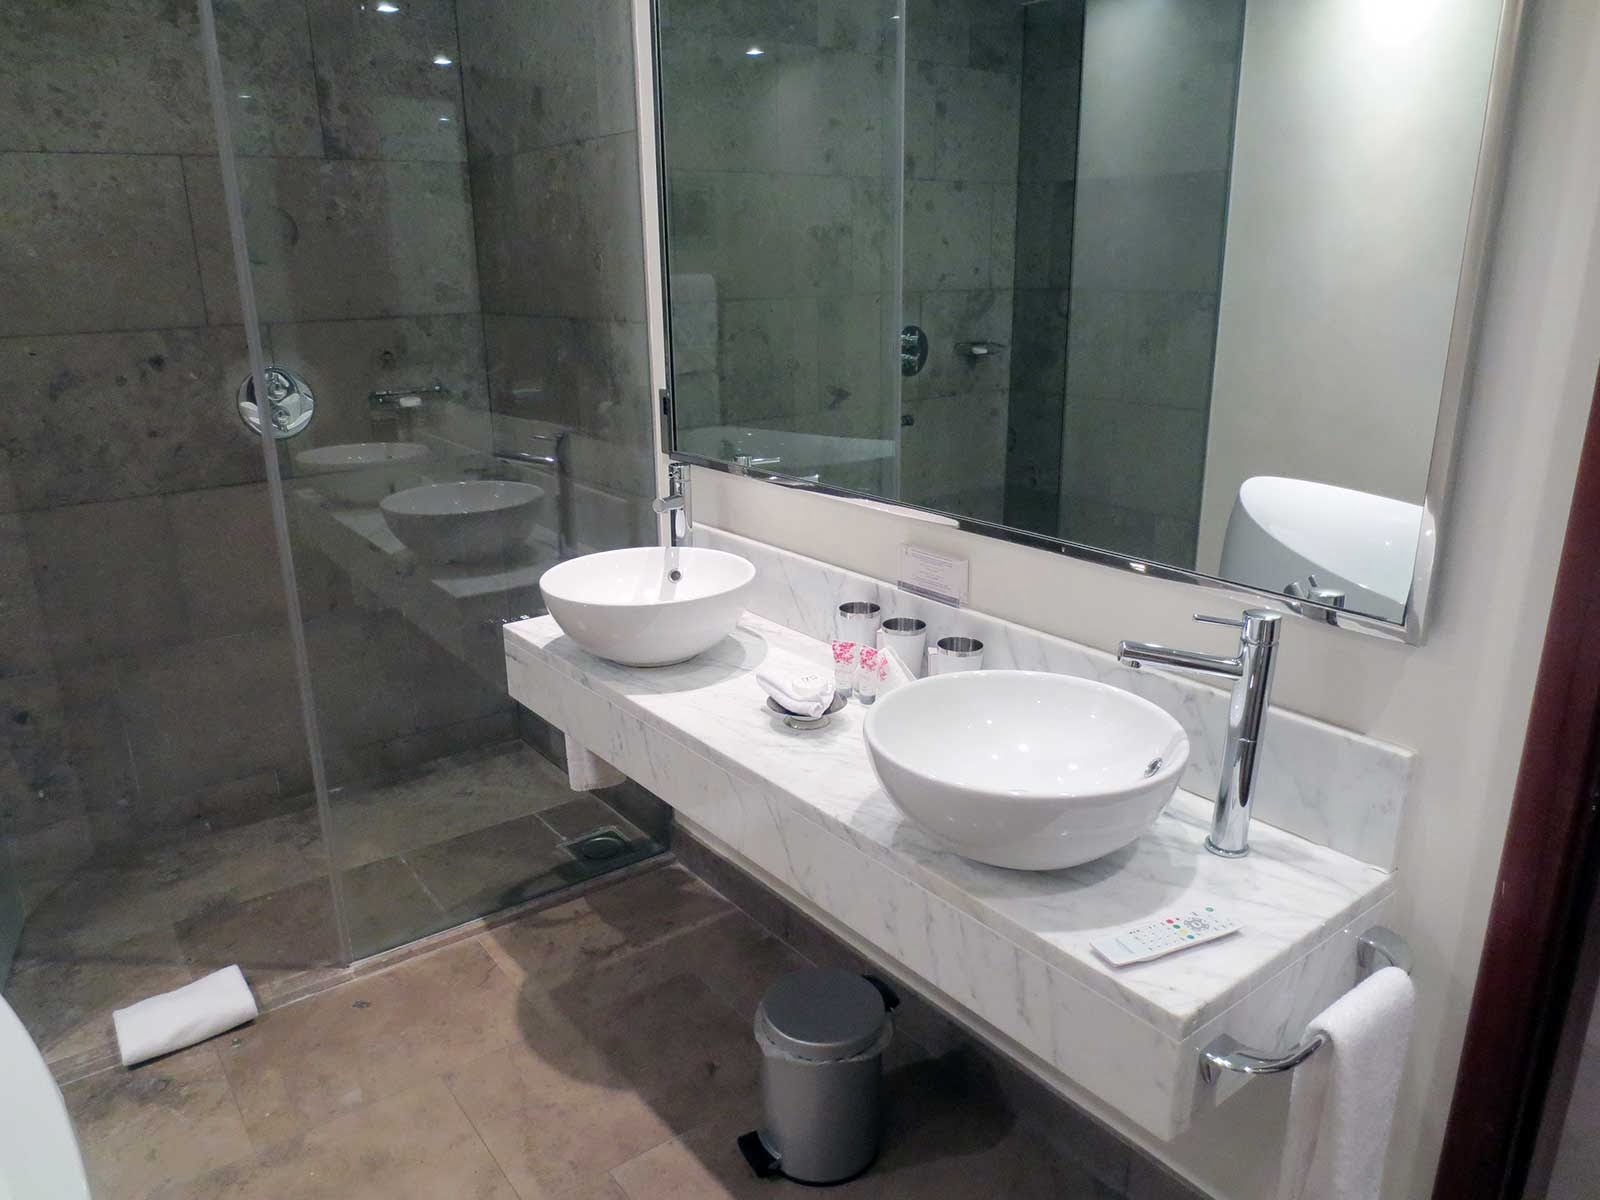 Bathroom Sinks Galway we're in galway! | anna saccone joly